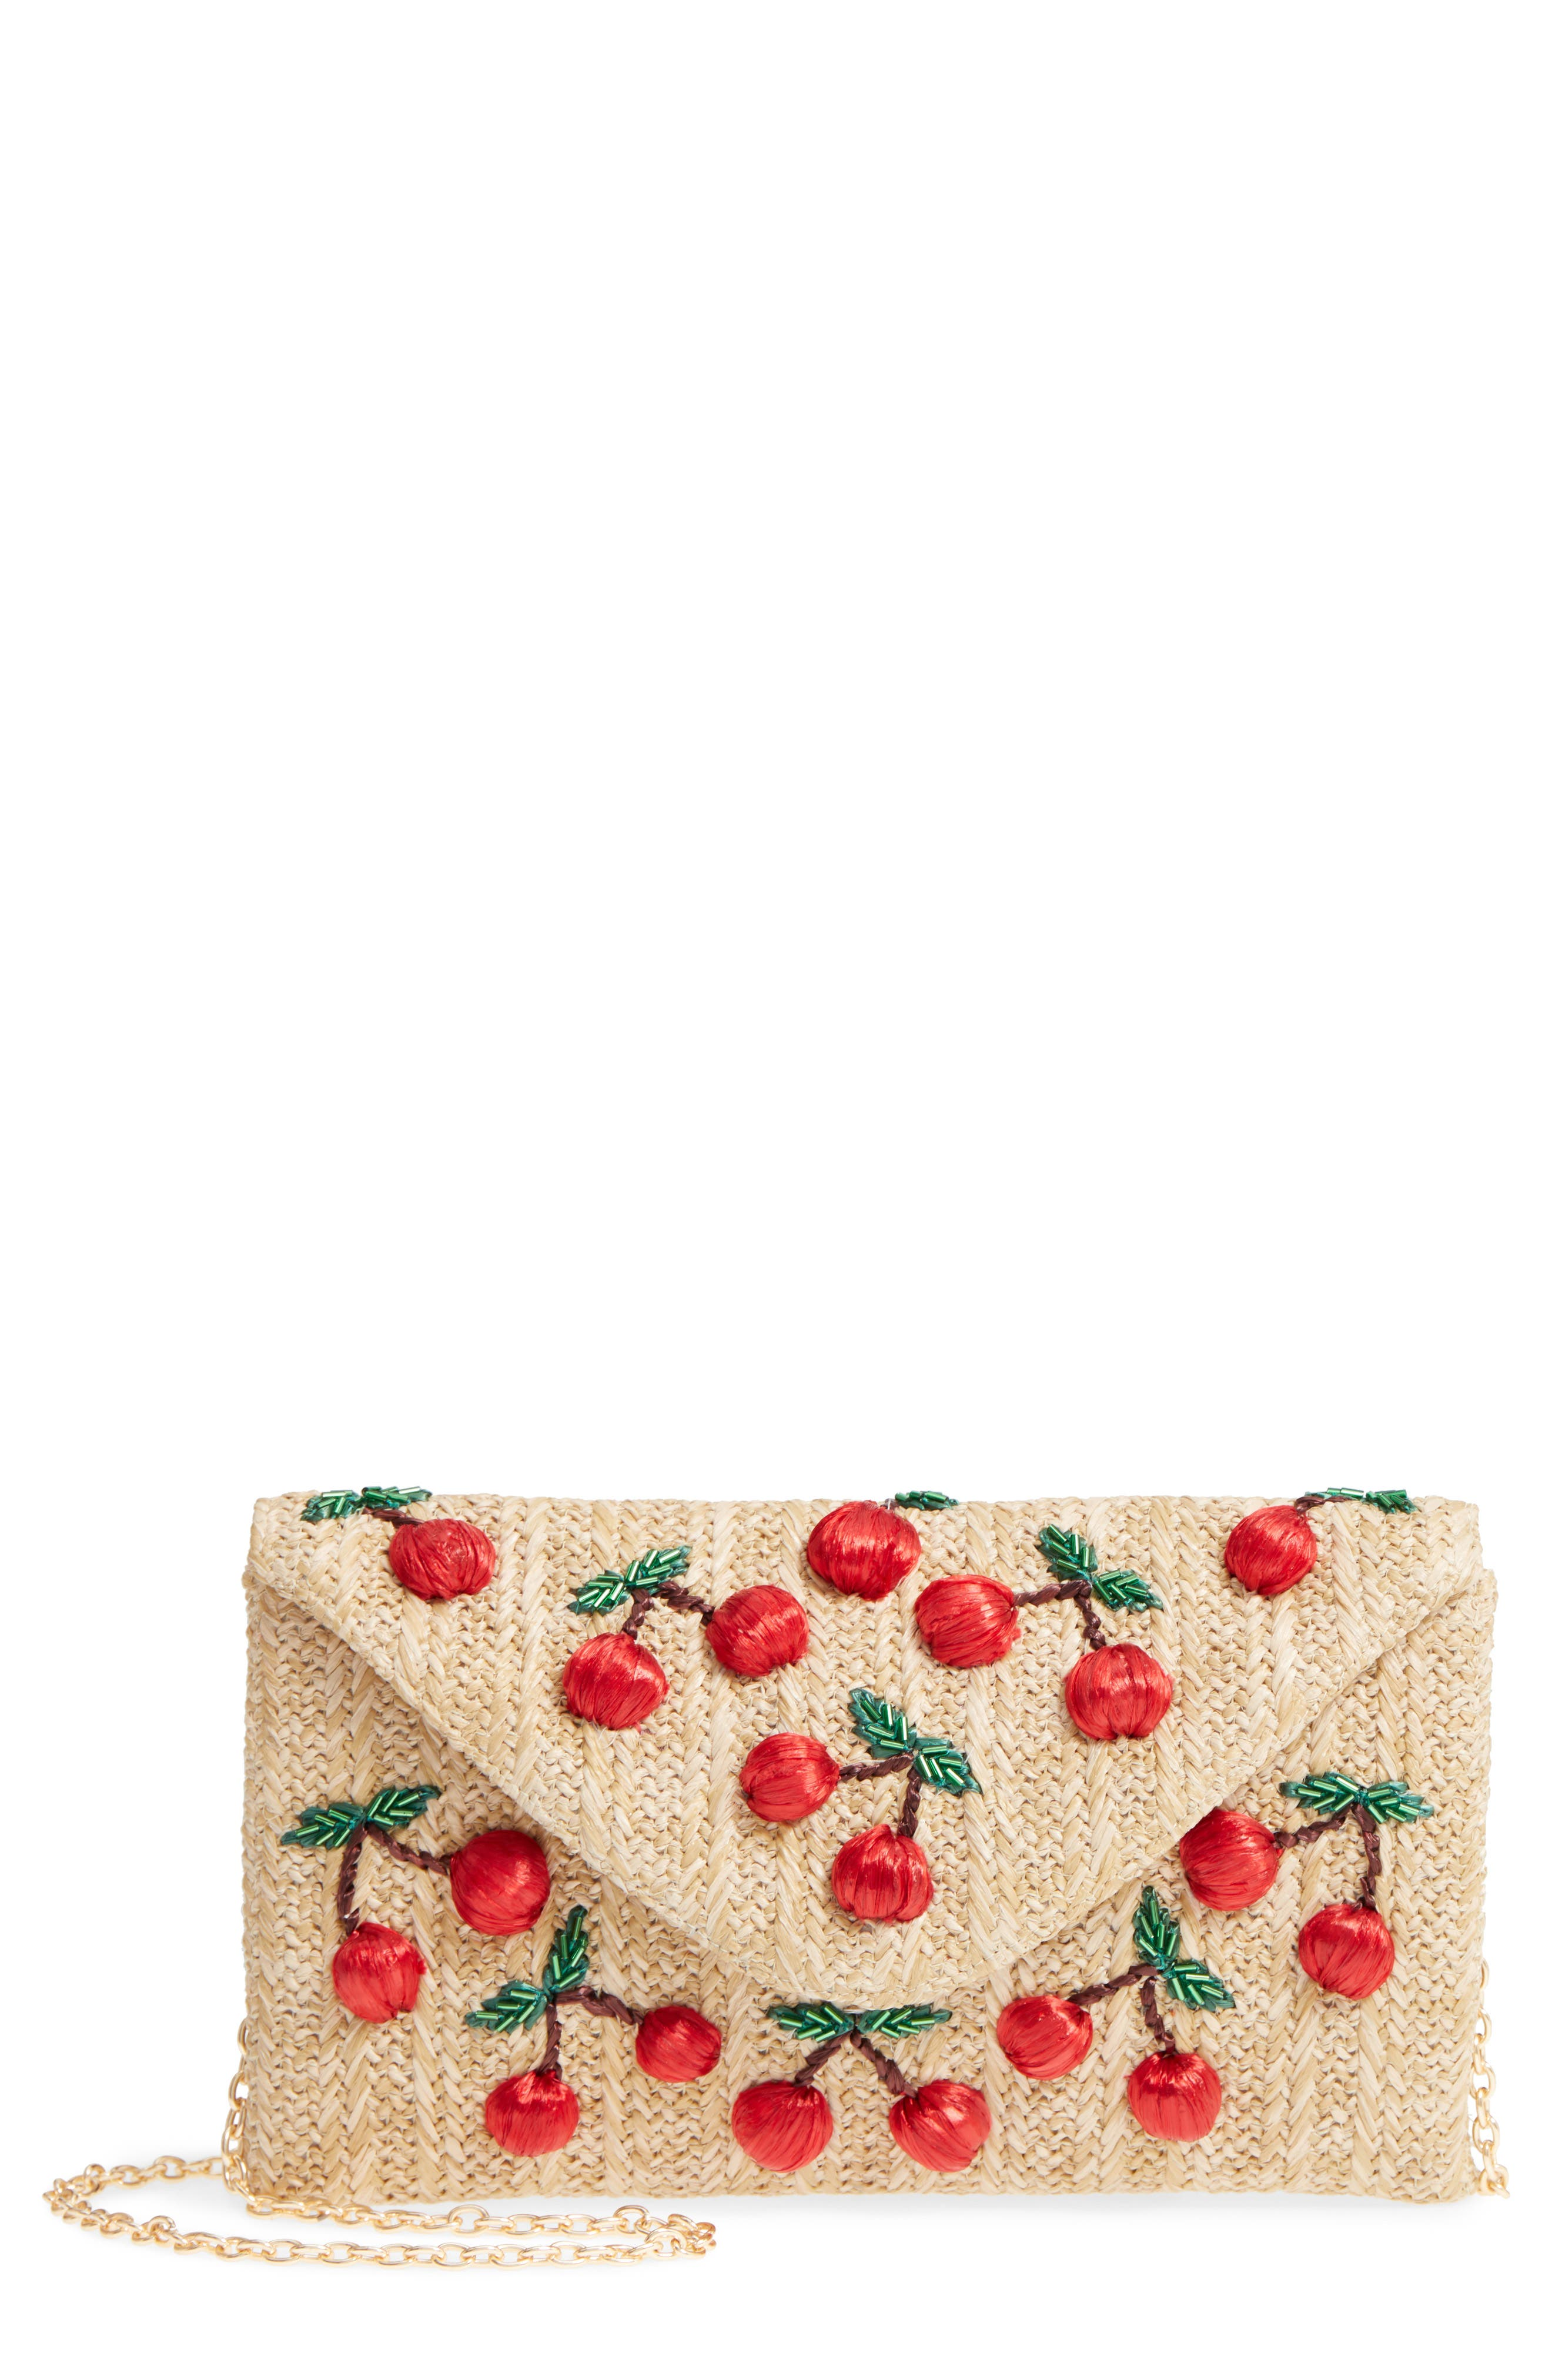 Cherry Embellished Straw Envelope Clutch,                             Main thumbnail 1, color,                             235